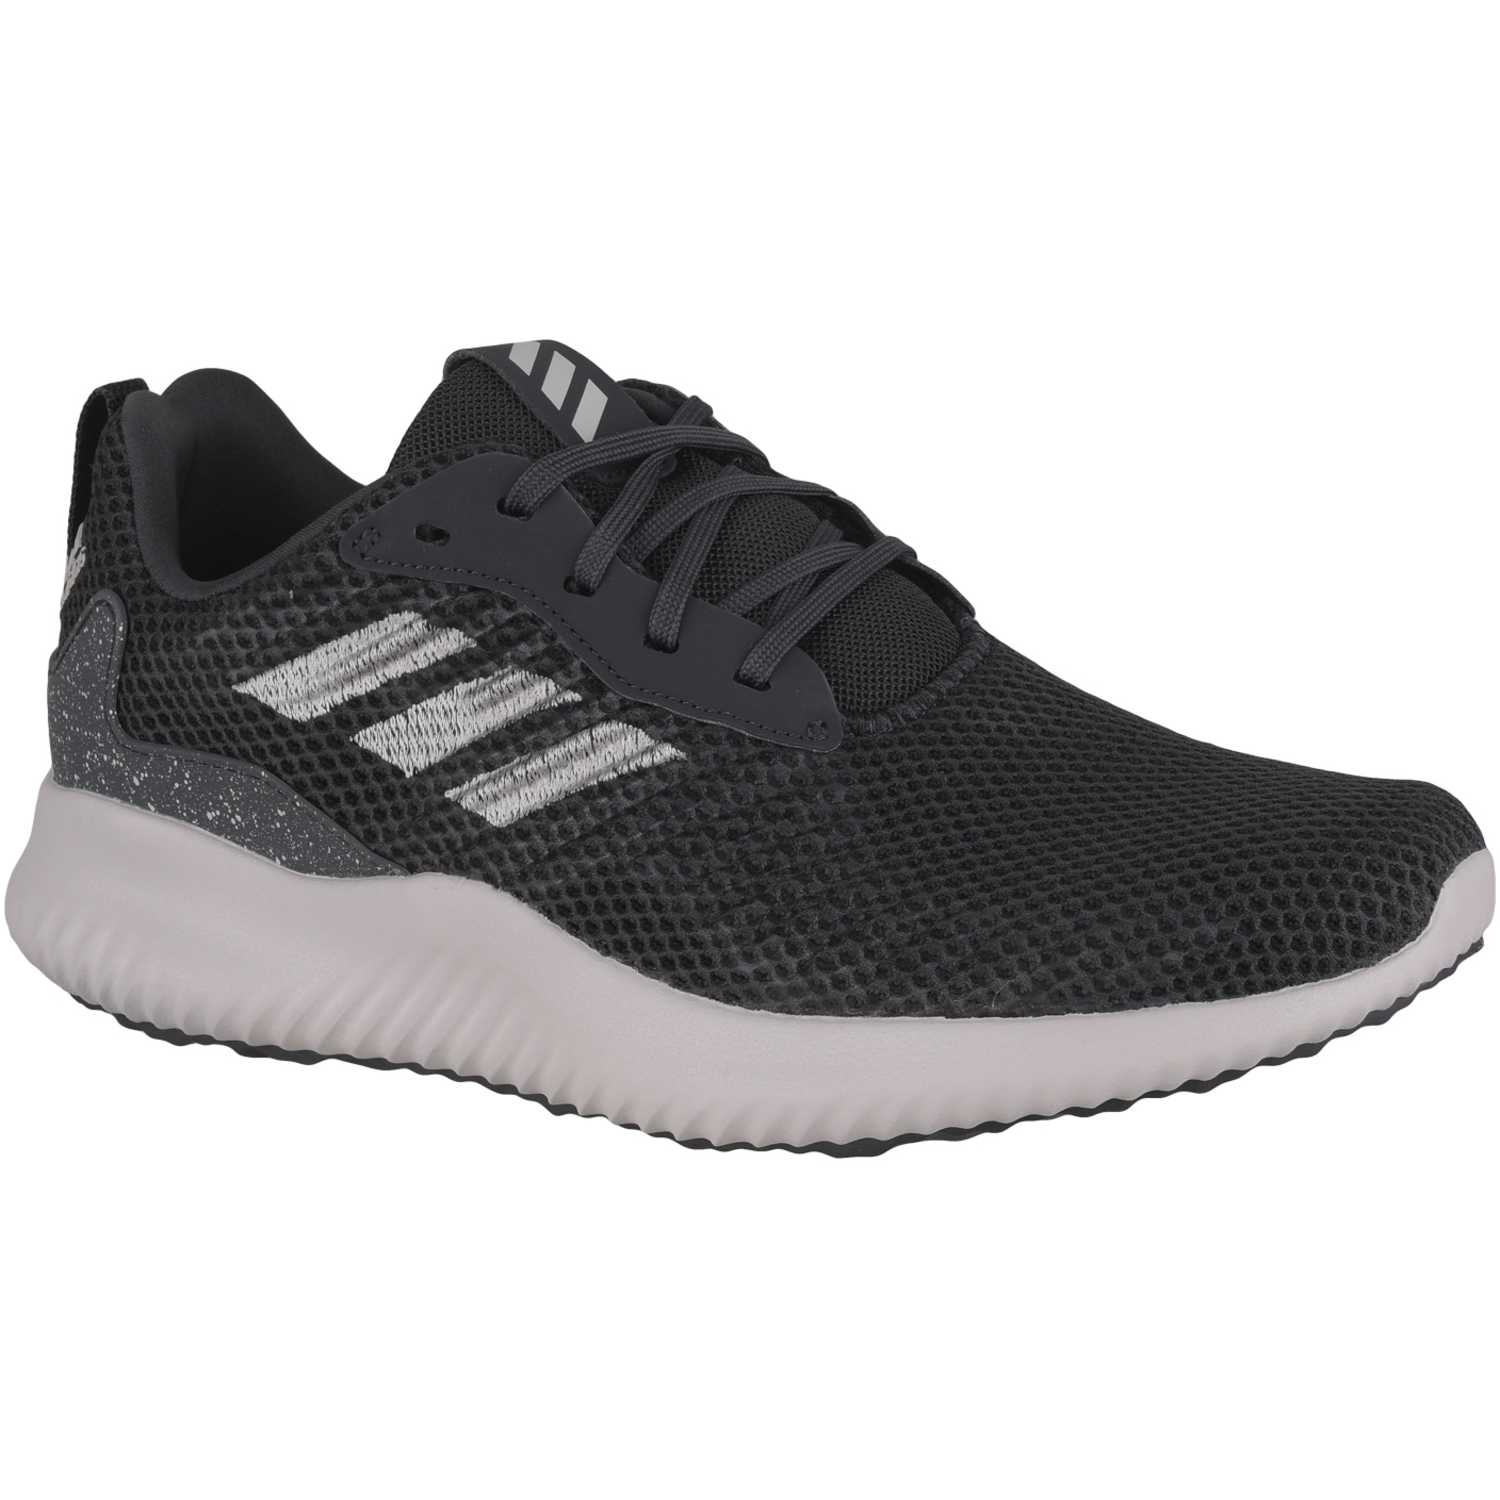 purchase cheap 86f5c 01f3a Zapatilla de Hombre Adidas Negro alphabounce rc m